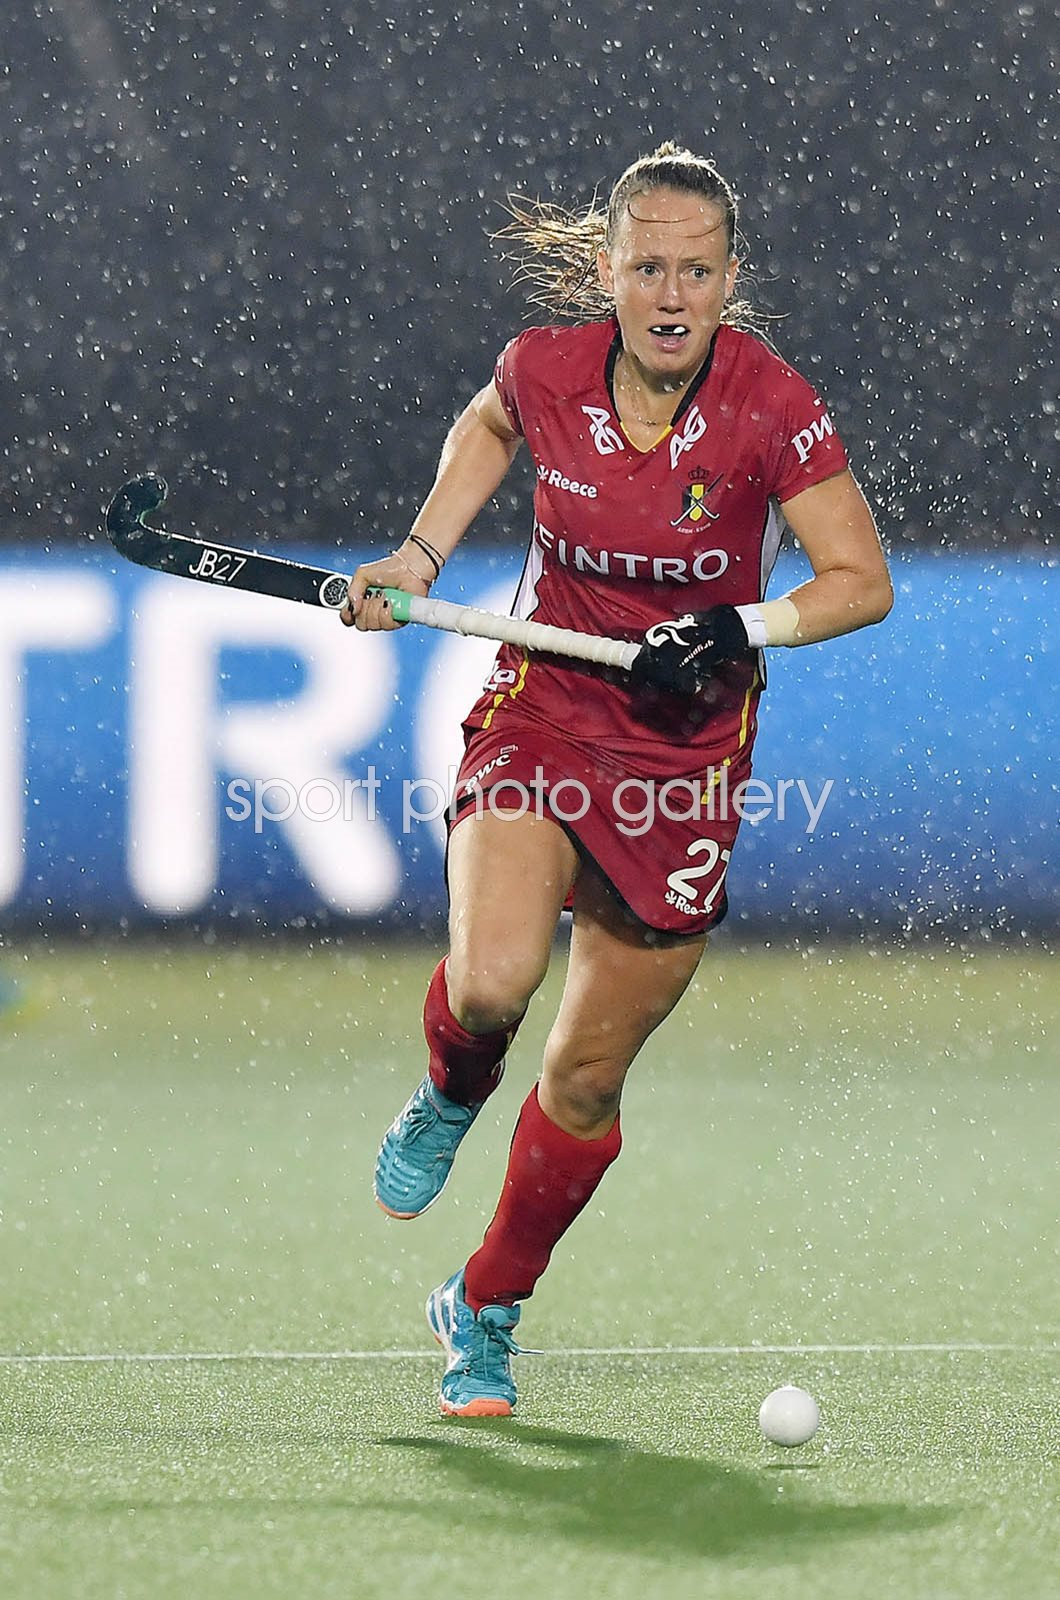 Jill Boon Belgium World Hockey League 2017